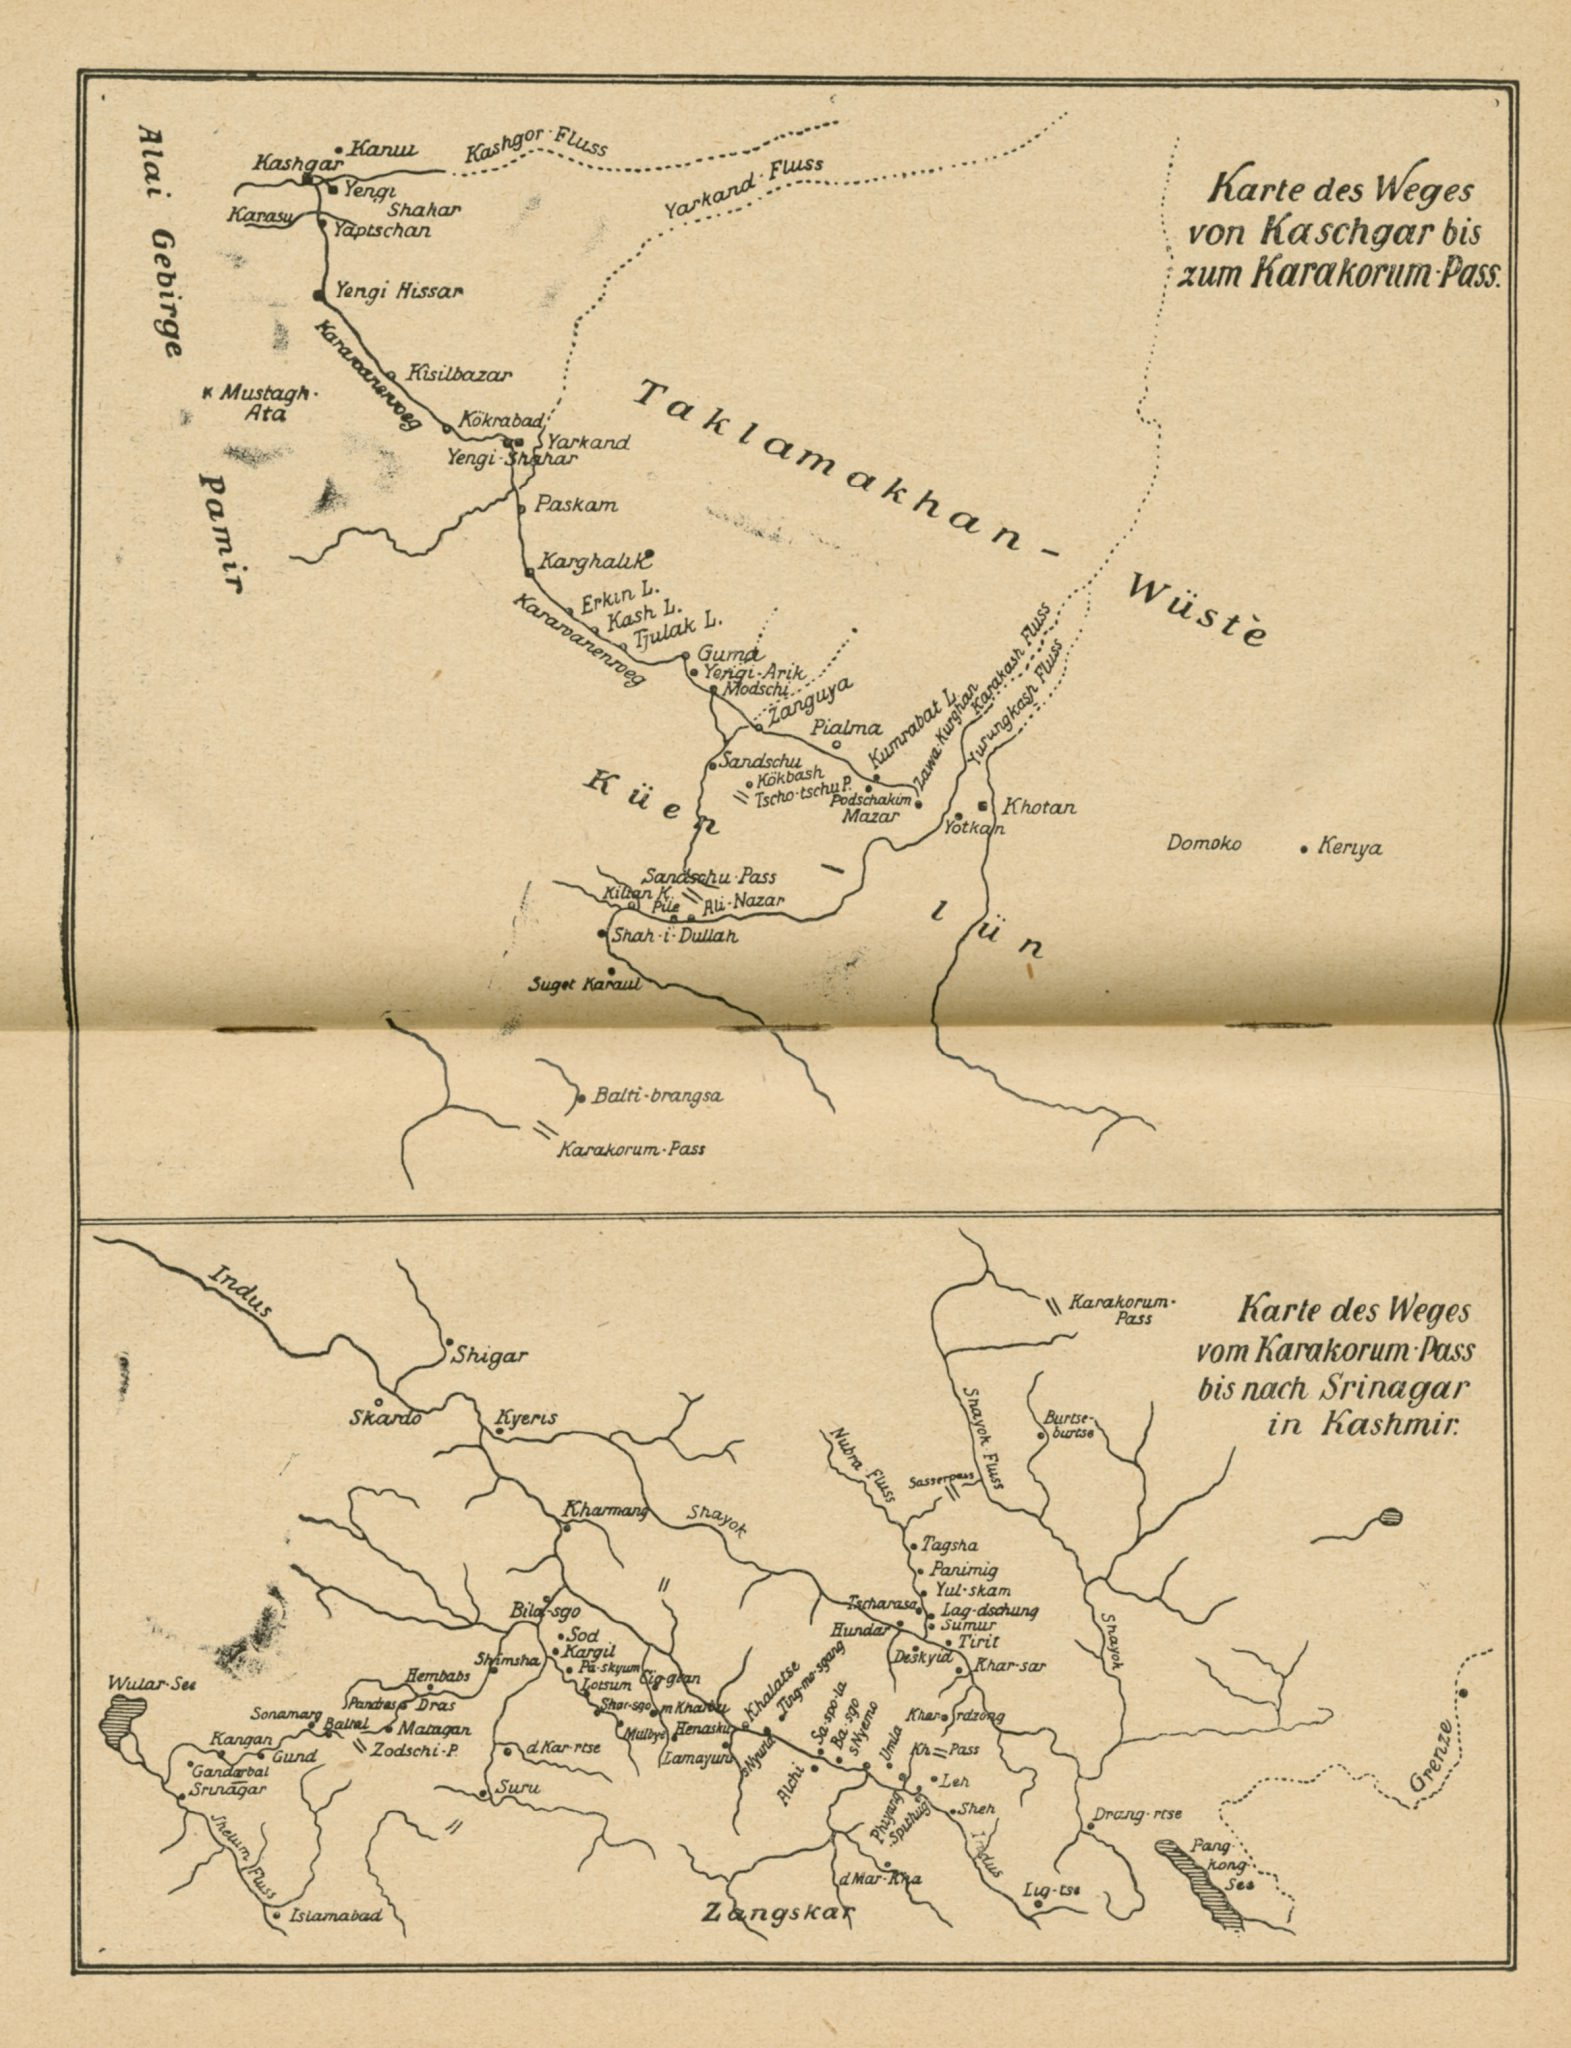 Map of the route from Kashgar to the Karakorum pass, and to Srinagar 1921